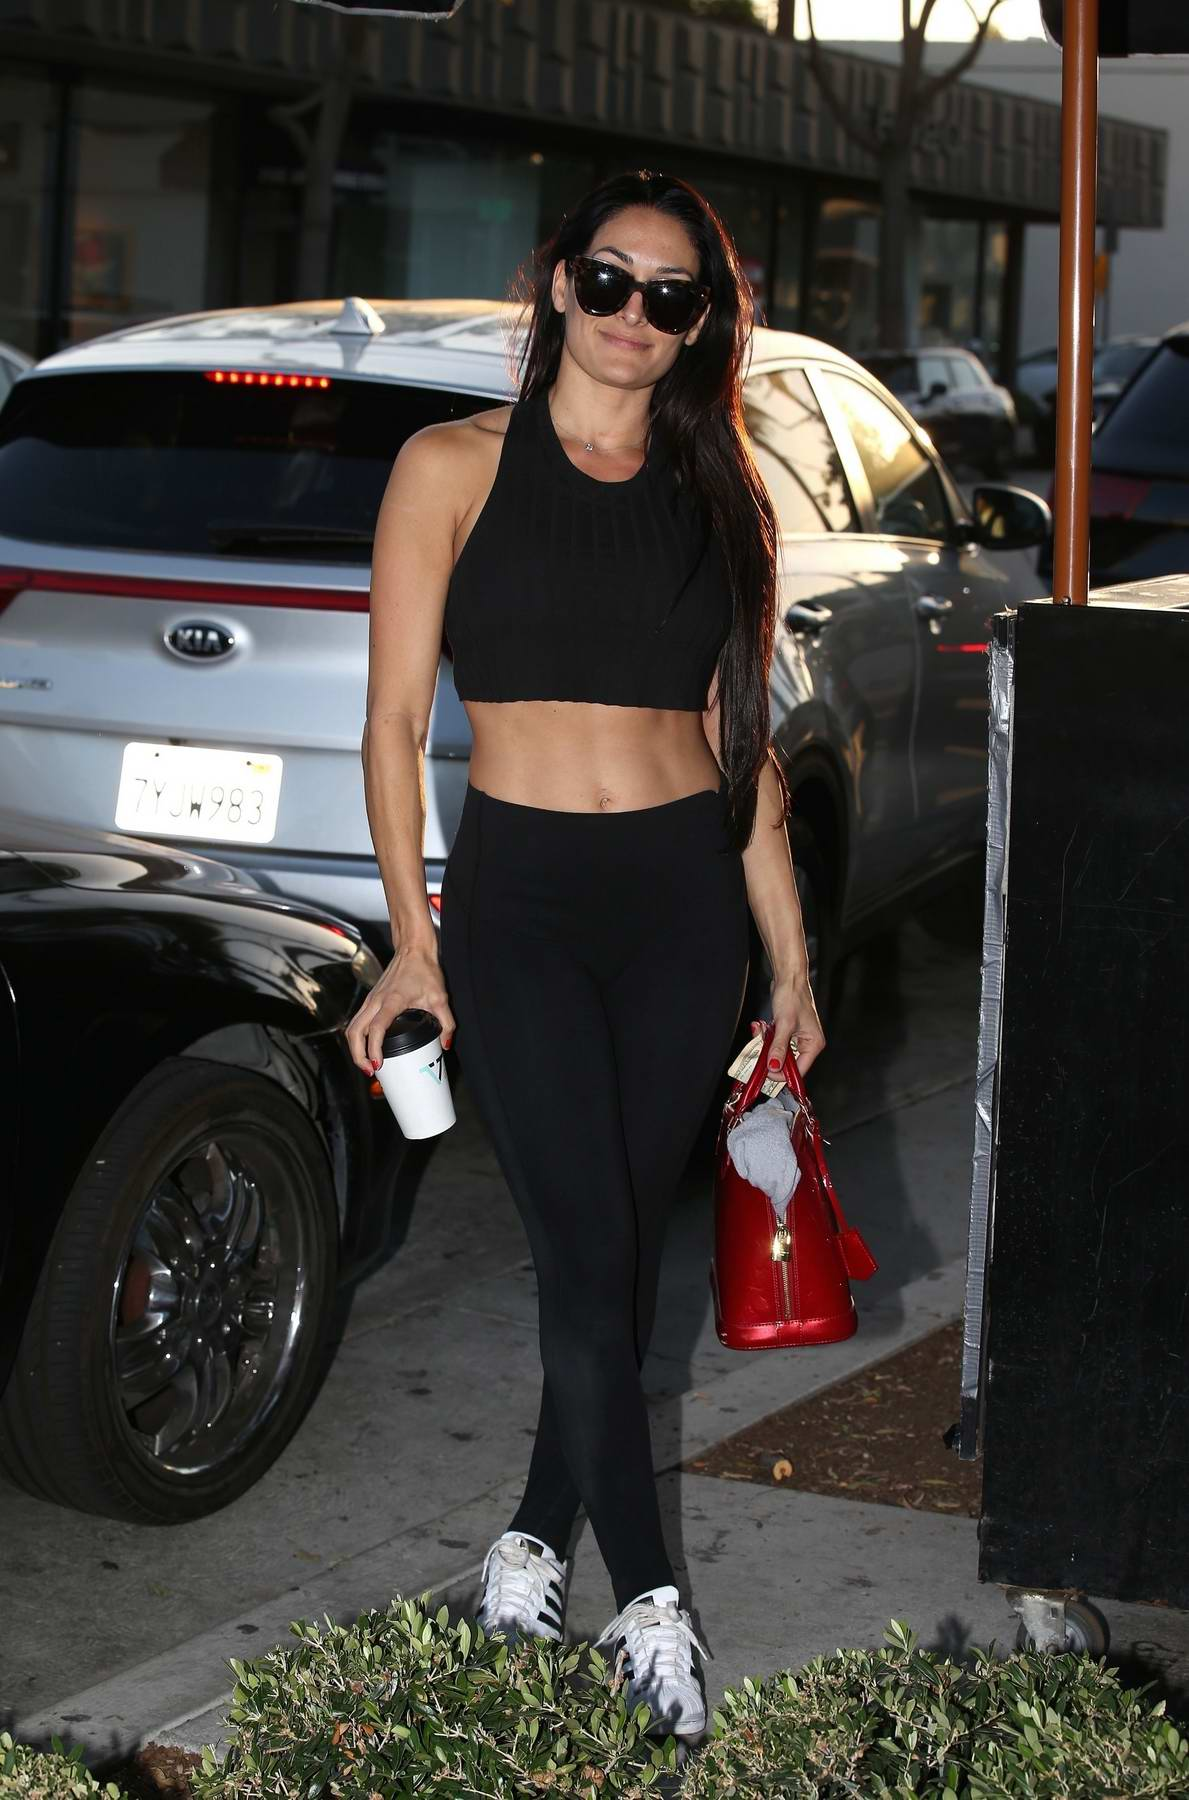 Nikki Bella meets up with dance partner and DWTS co-star Artem Chigvintsev at Verne Coffee in West Hollywood, Los Angeles